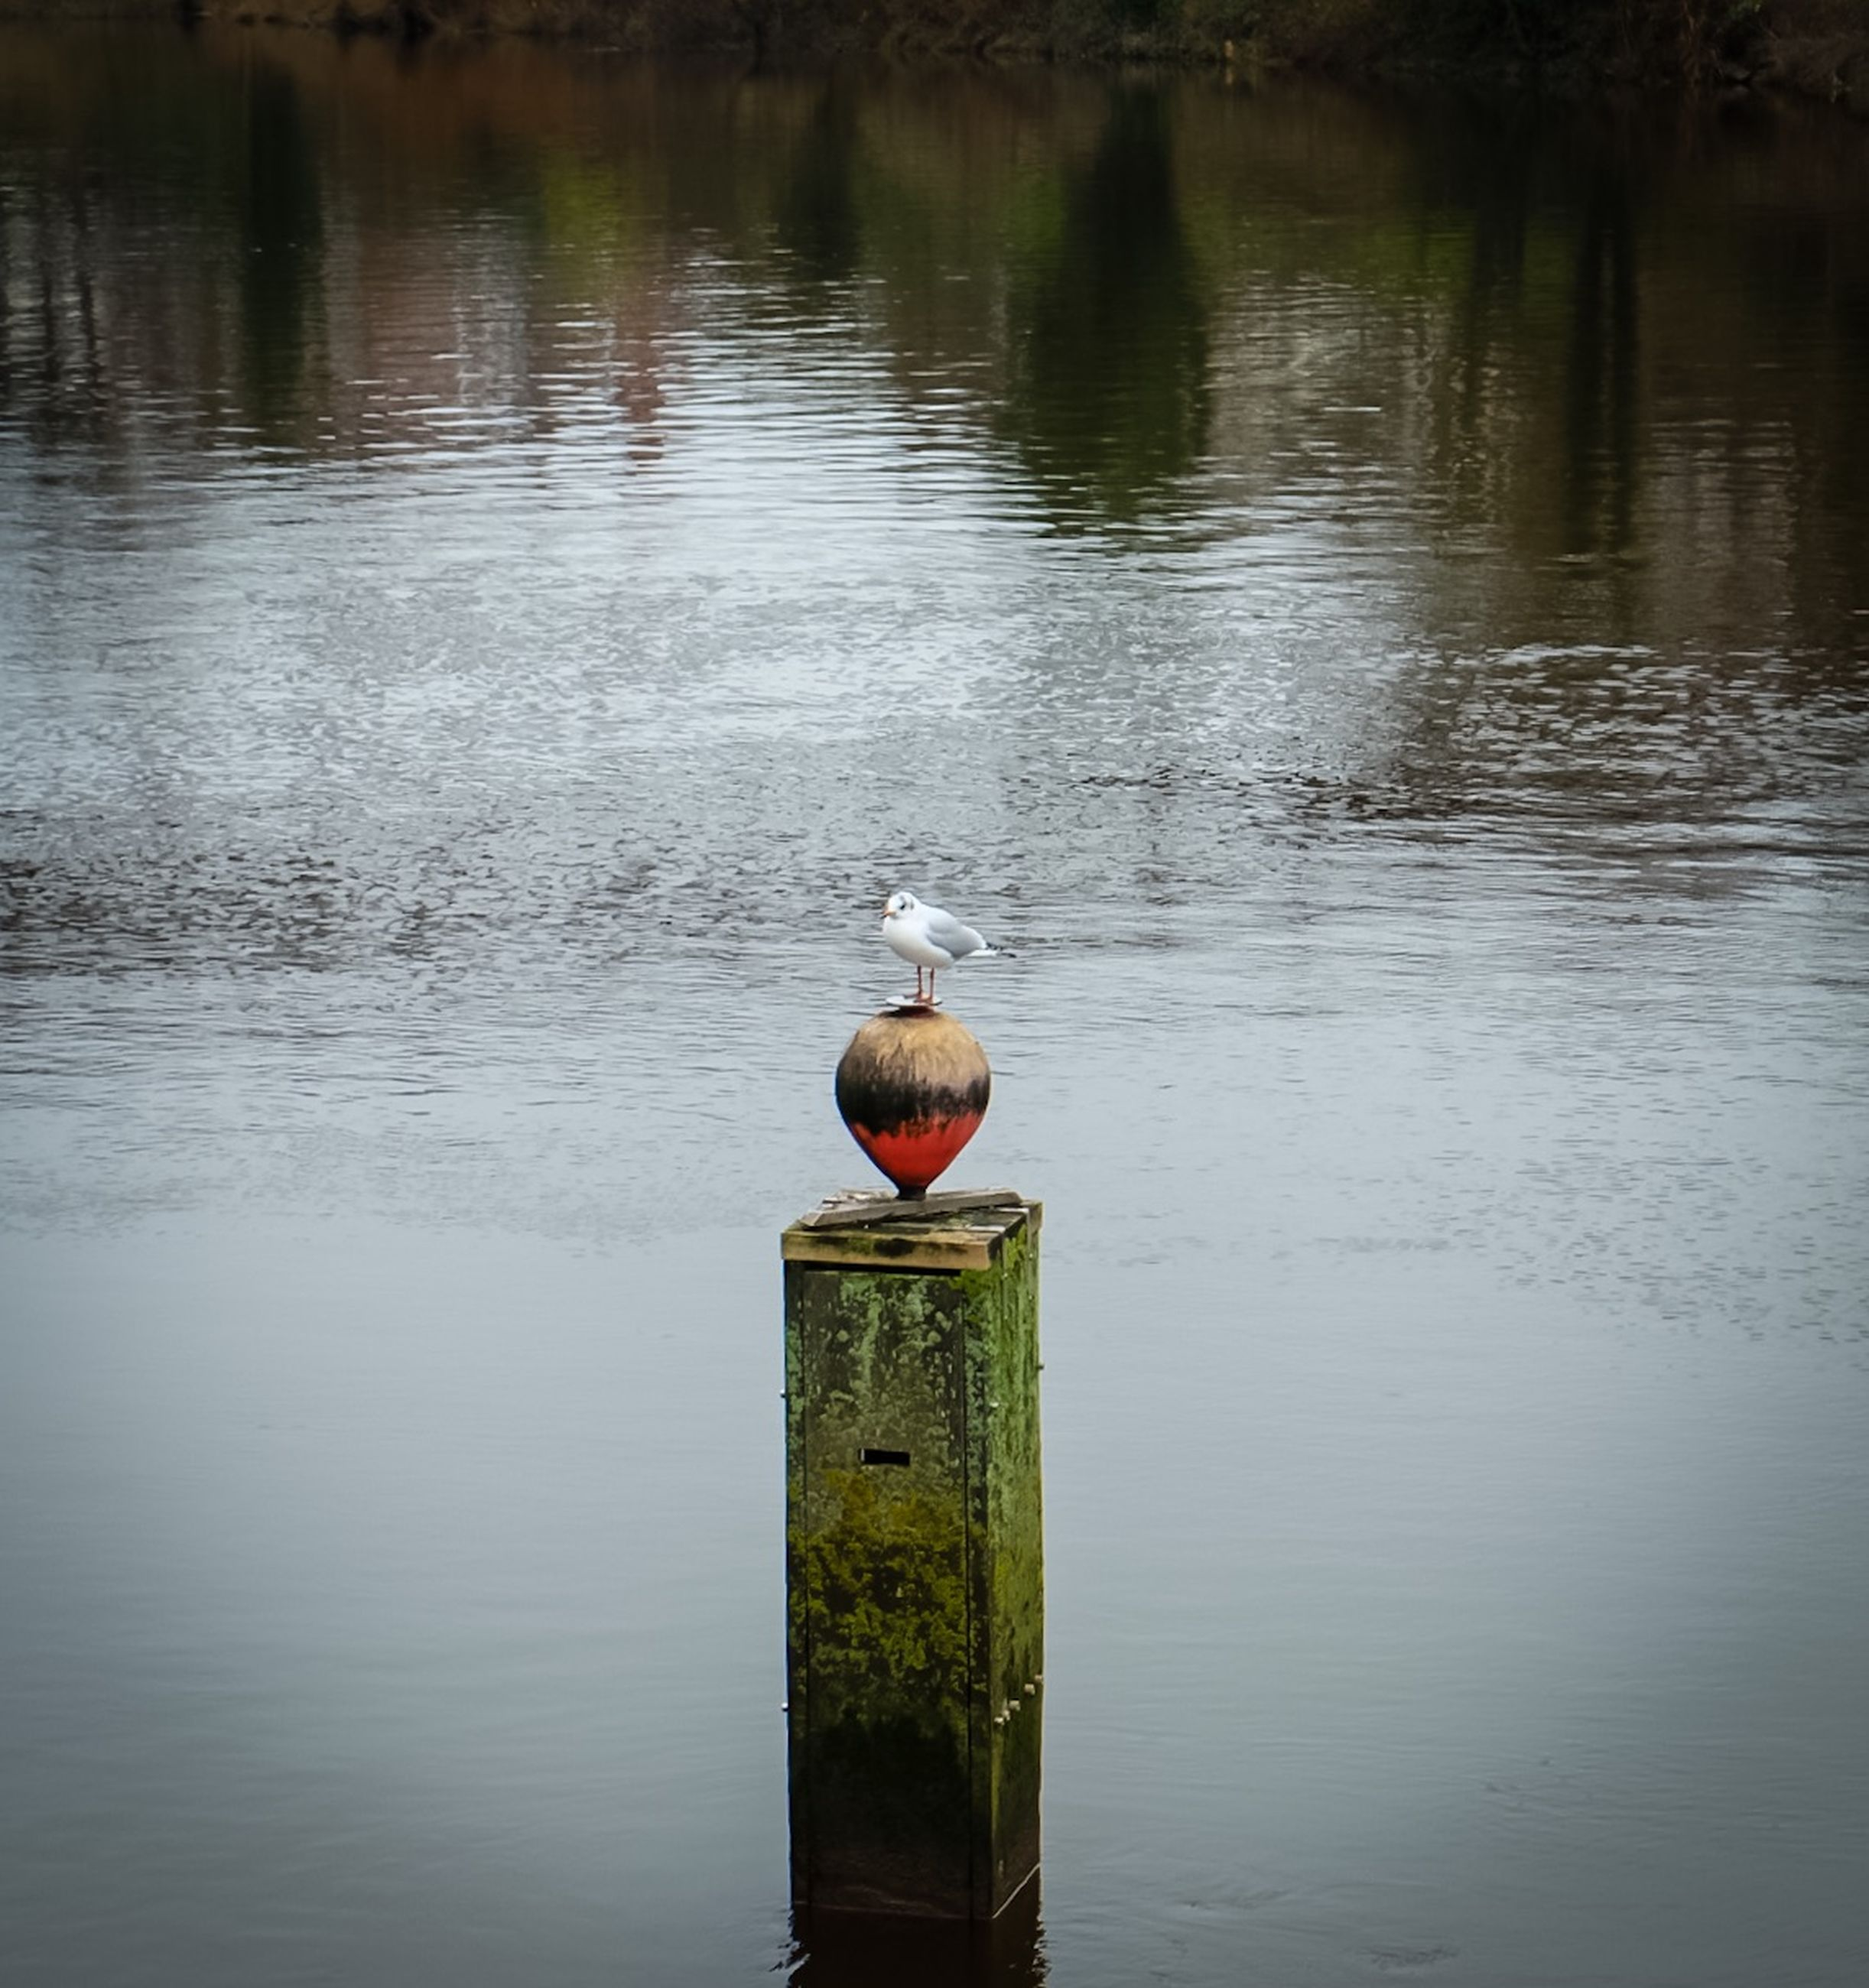 water, bird, lake, animal themes, animals in the wild, wildlife, one animal, reflection, wood - material, waterfront, rippled, wooden post, nature, tranquility, perching, outdoors, buoy, river, pier, no people